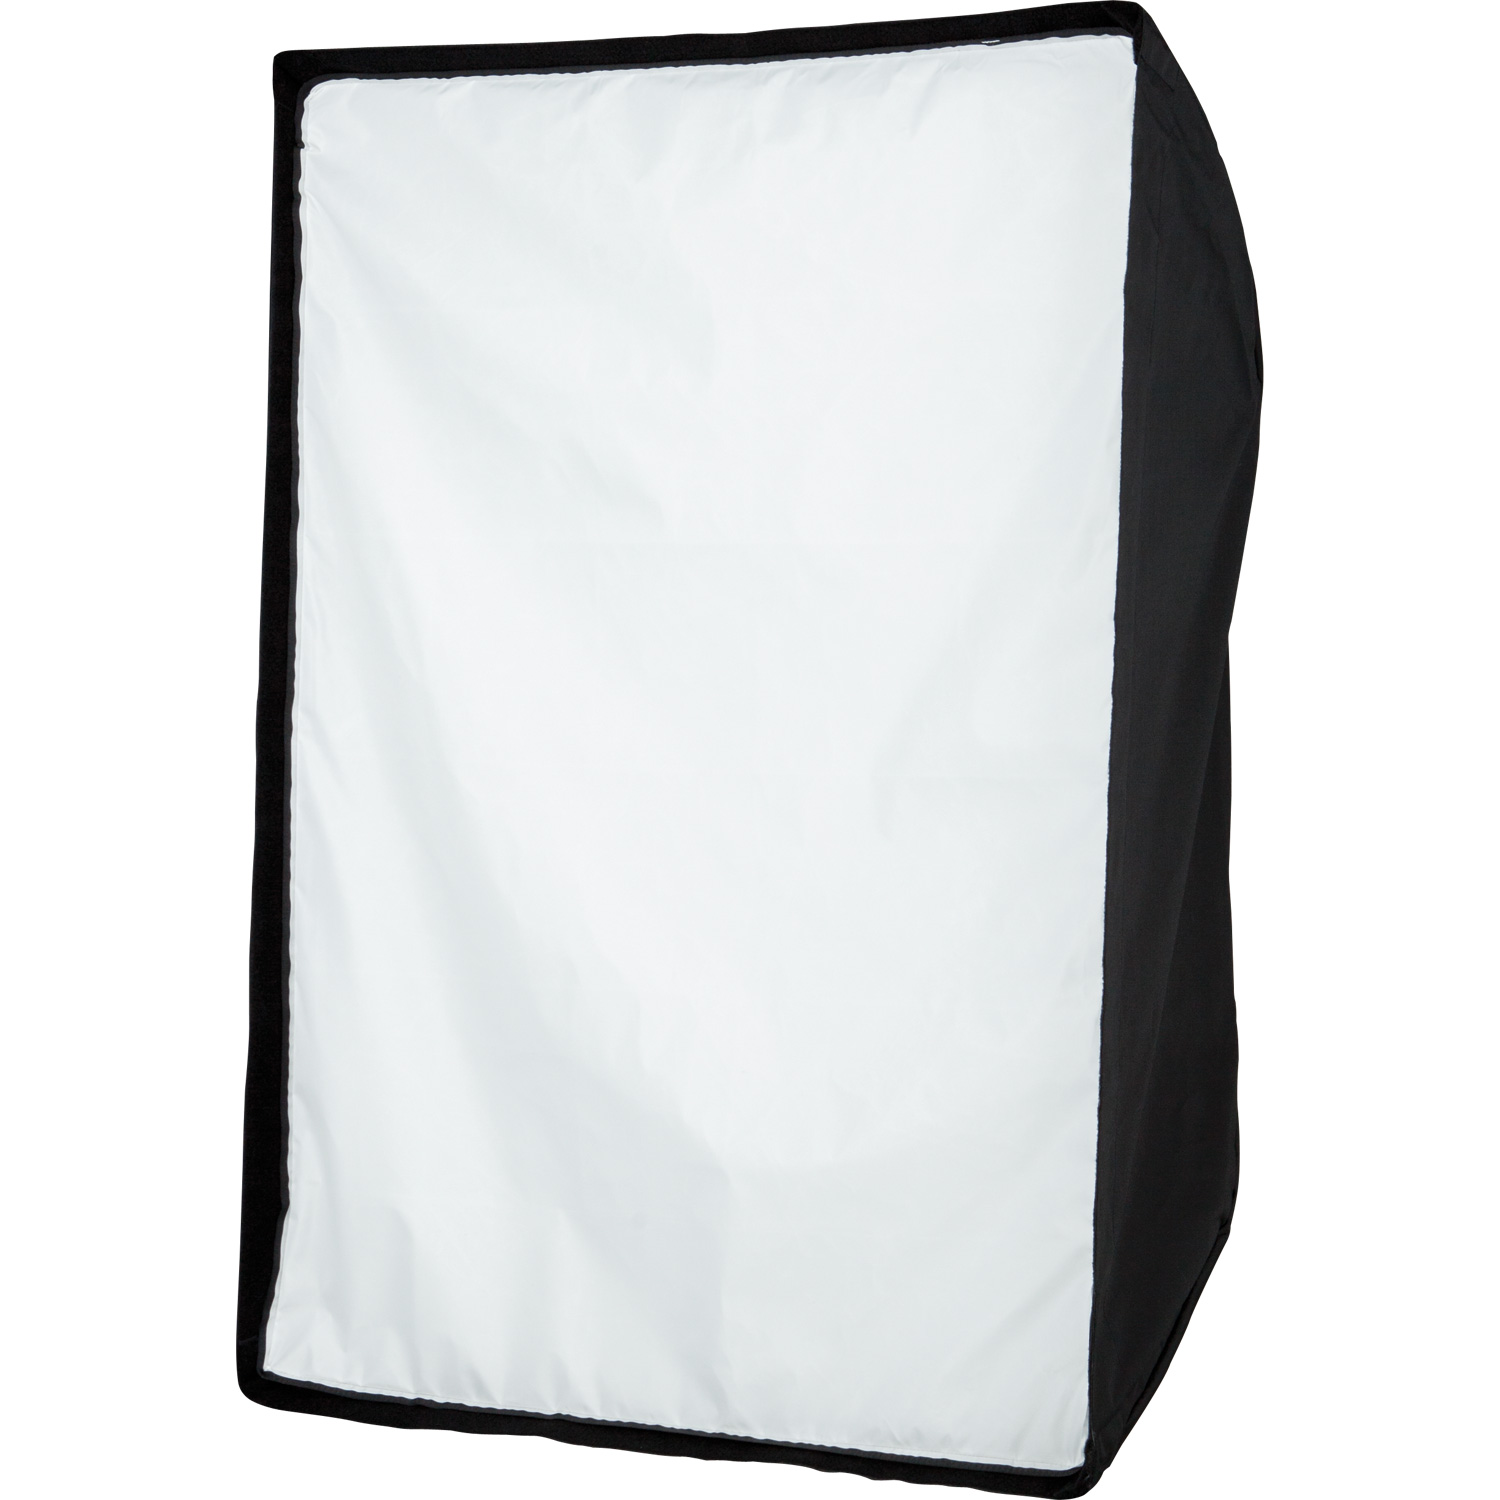 36-in. x 48-in. Pro Signature Softbox